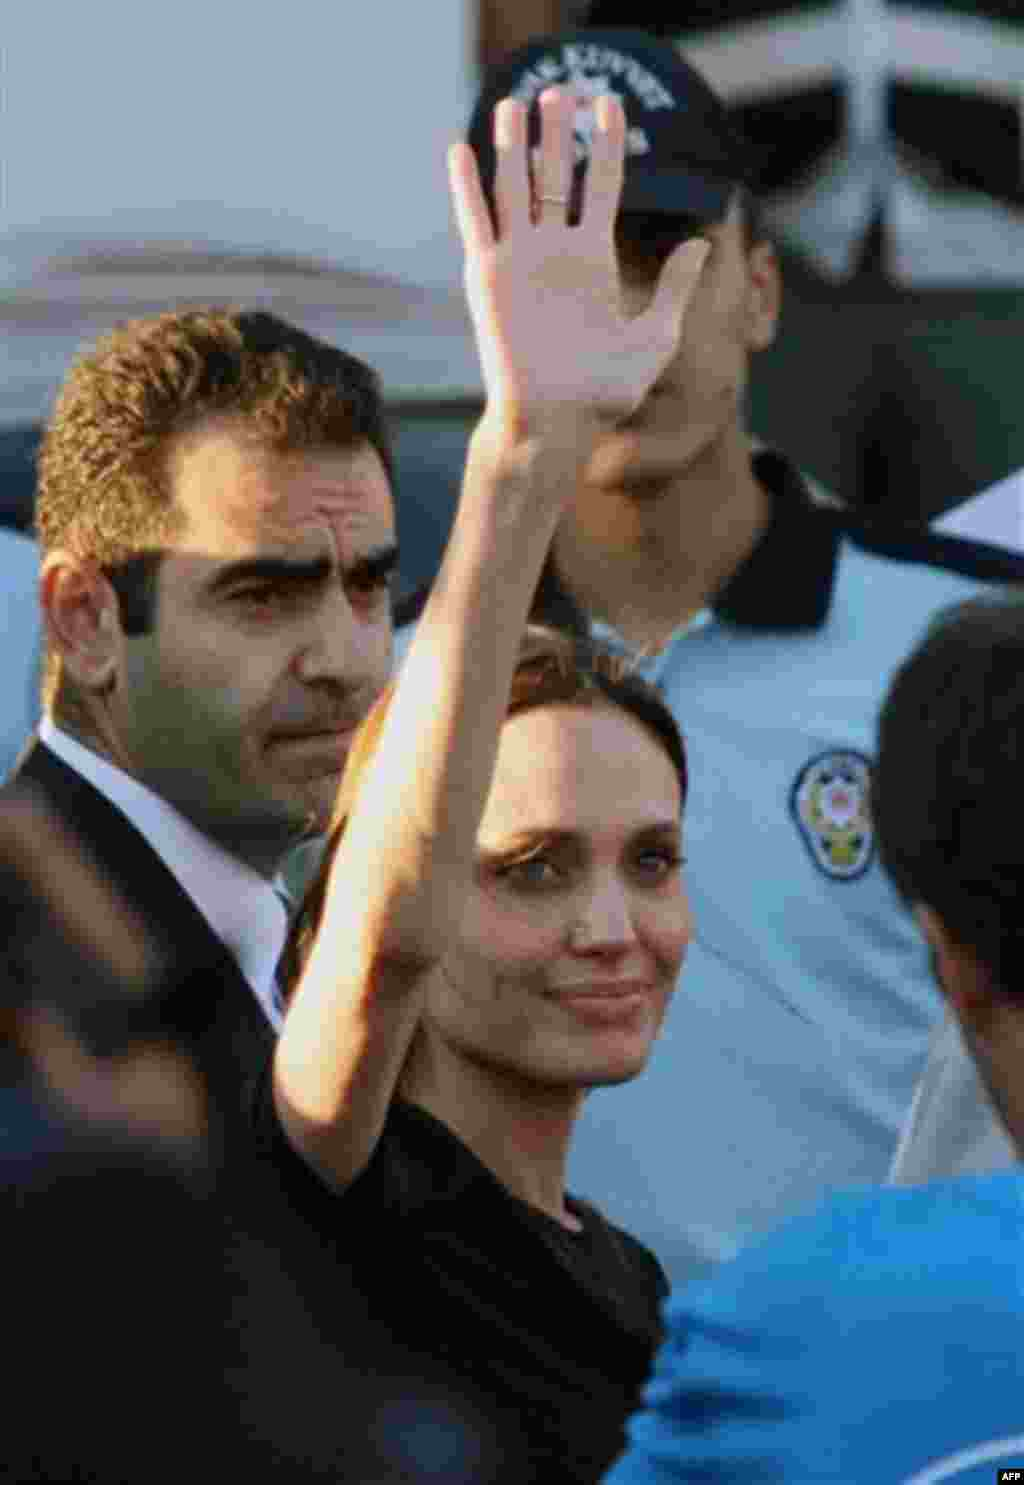 Angelina Jolie, the US actress and goodwill ambassador for the U.N. High Commissioner for Refugees, waves after her visit to a Syrian refugee camp in Turkish town of Altinozu in Hatay province, Turkey, Friday, June 17, 2011. Jolie traveled to Turkey's bo